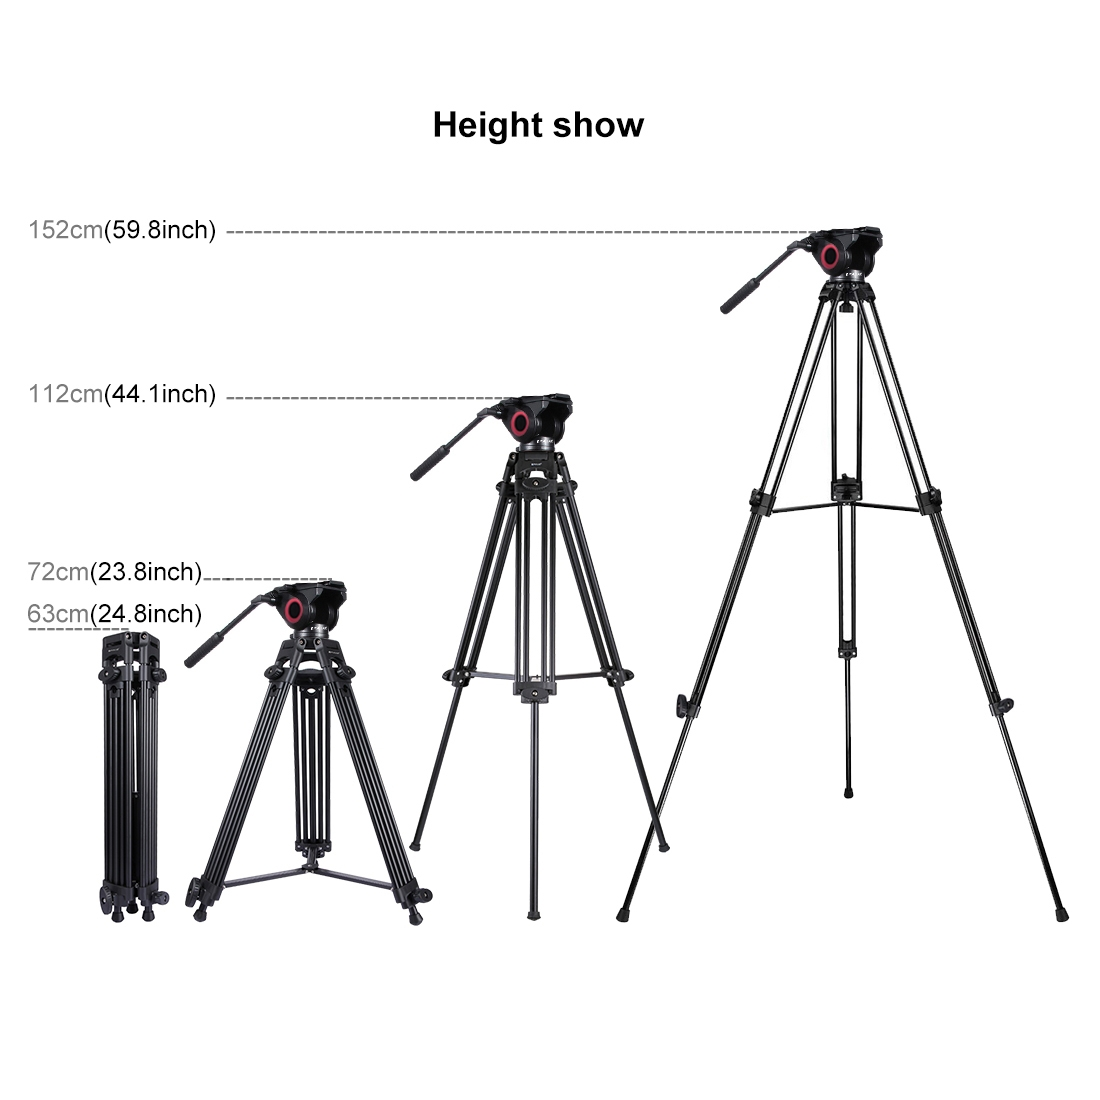 Puluz 3 In 1 Tripod Bowl Adapter Black Fluid Drag Head Wow Now Productions